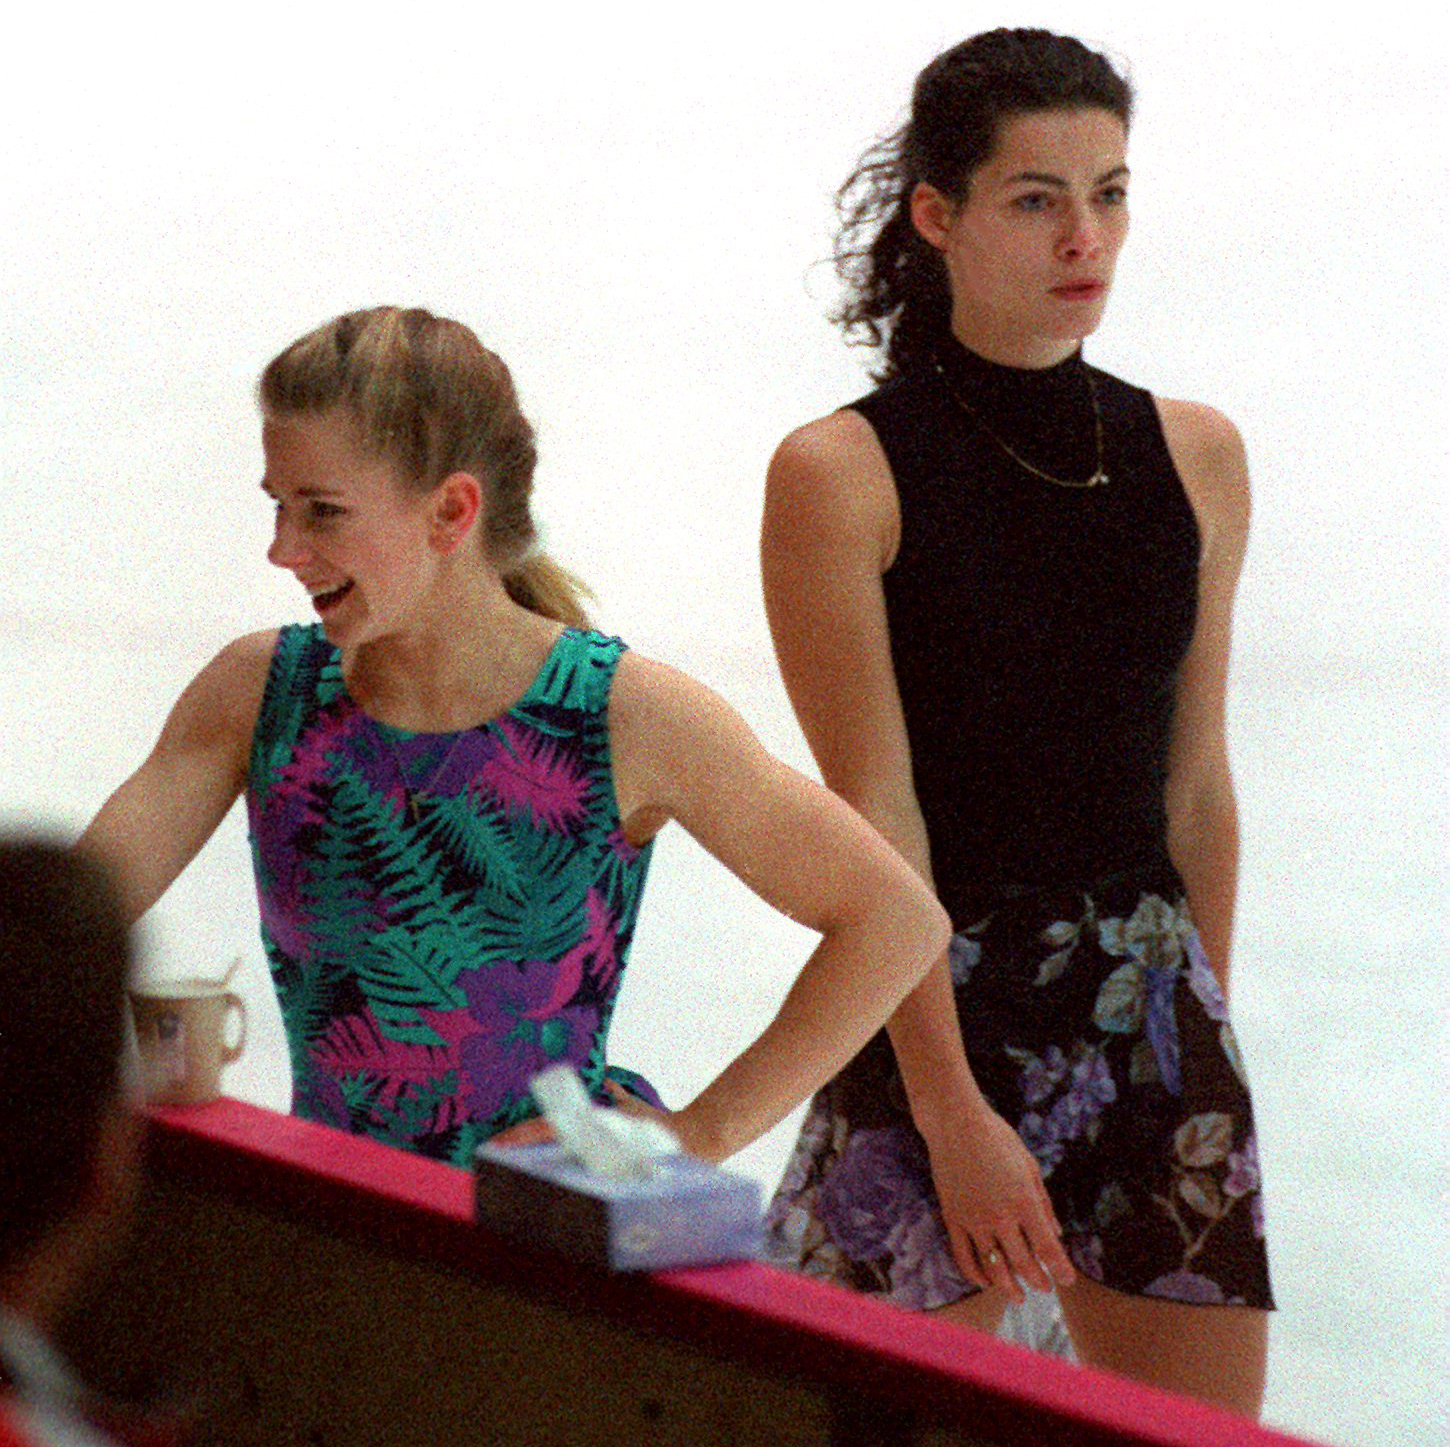 Tonya Harding is passed by Nancy Kerrigan during their first practice session in 1994. John Tlumacki  The Boston Globe via Getty Images